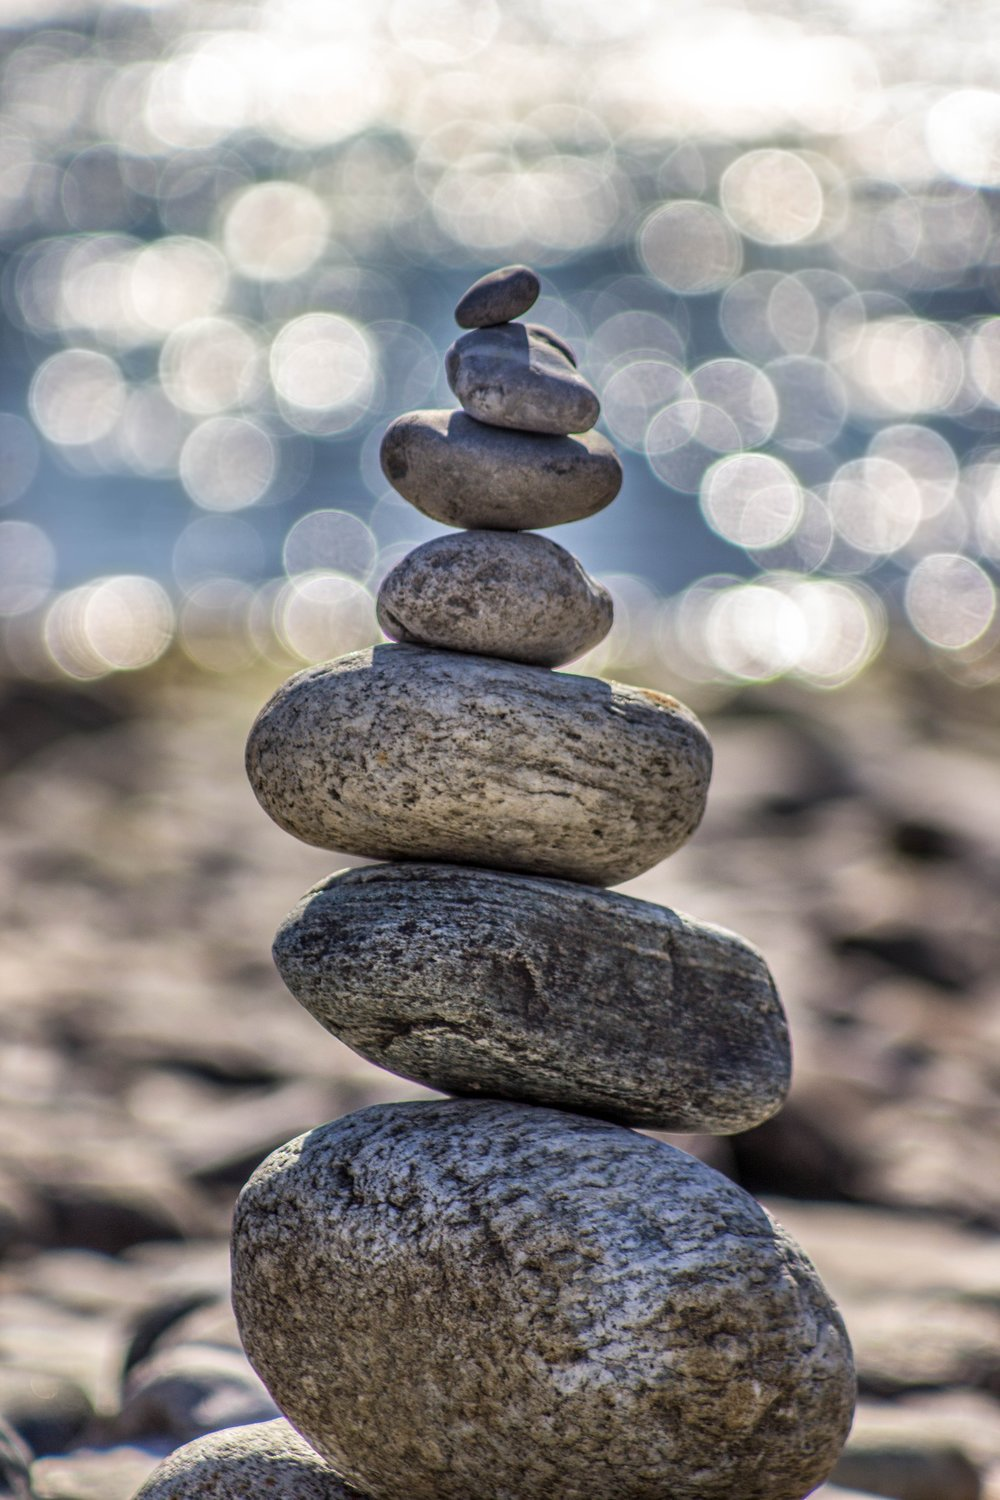 A Picture Depicting Balancing Rocks - deniz-altindas-38128.jpg